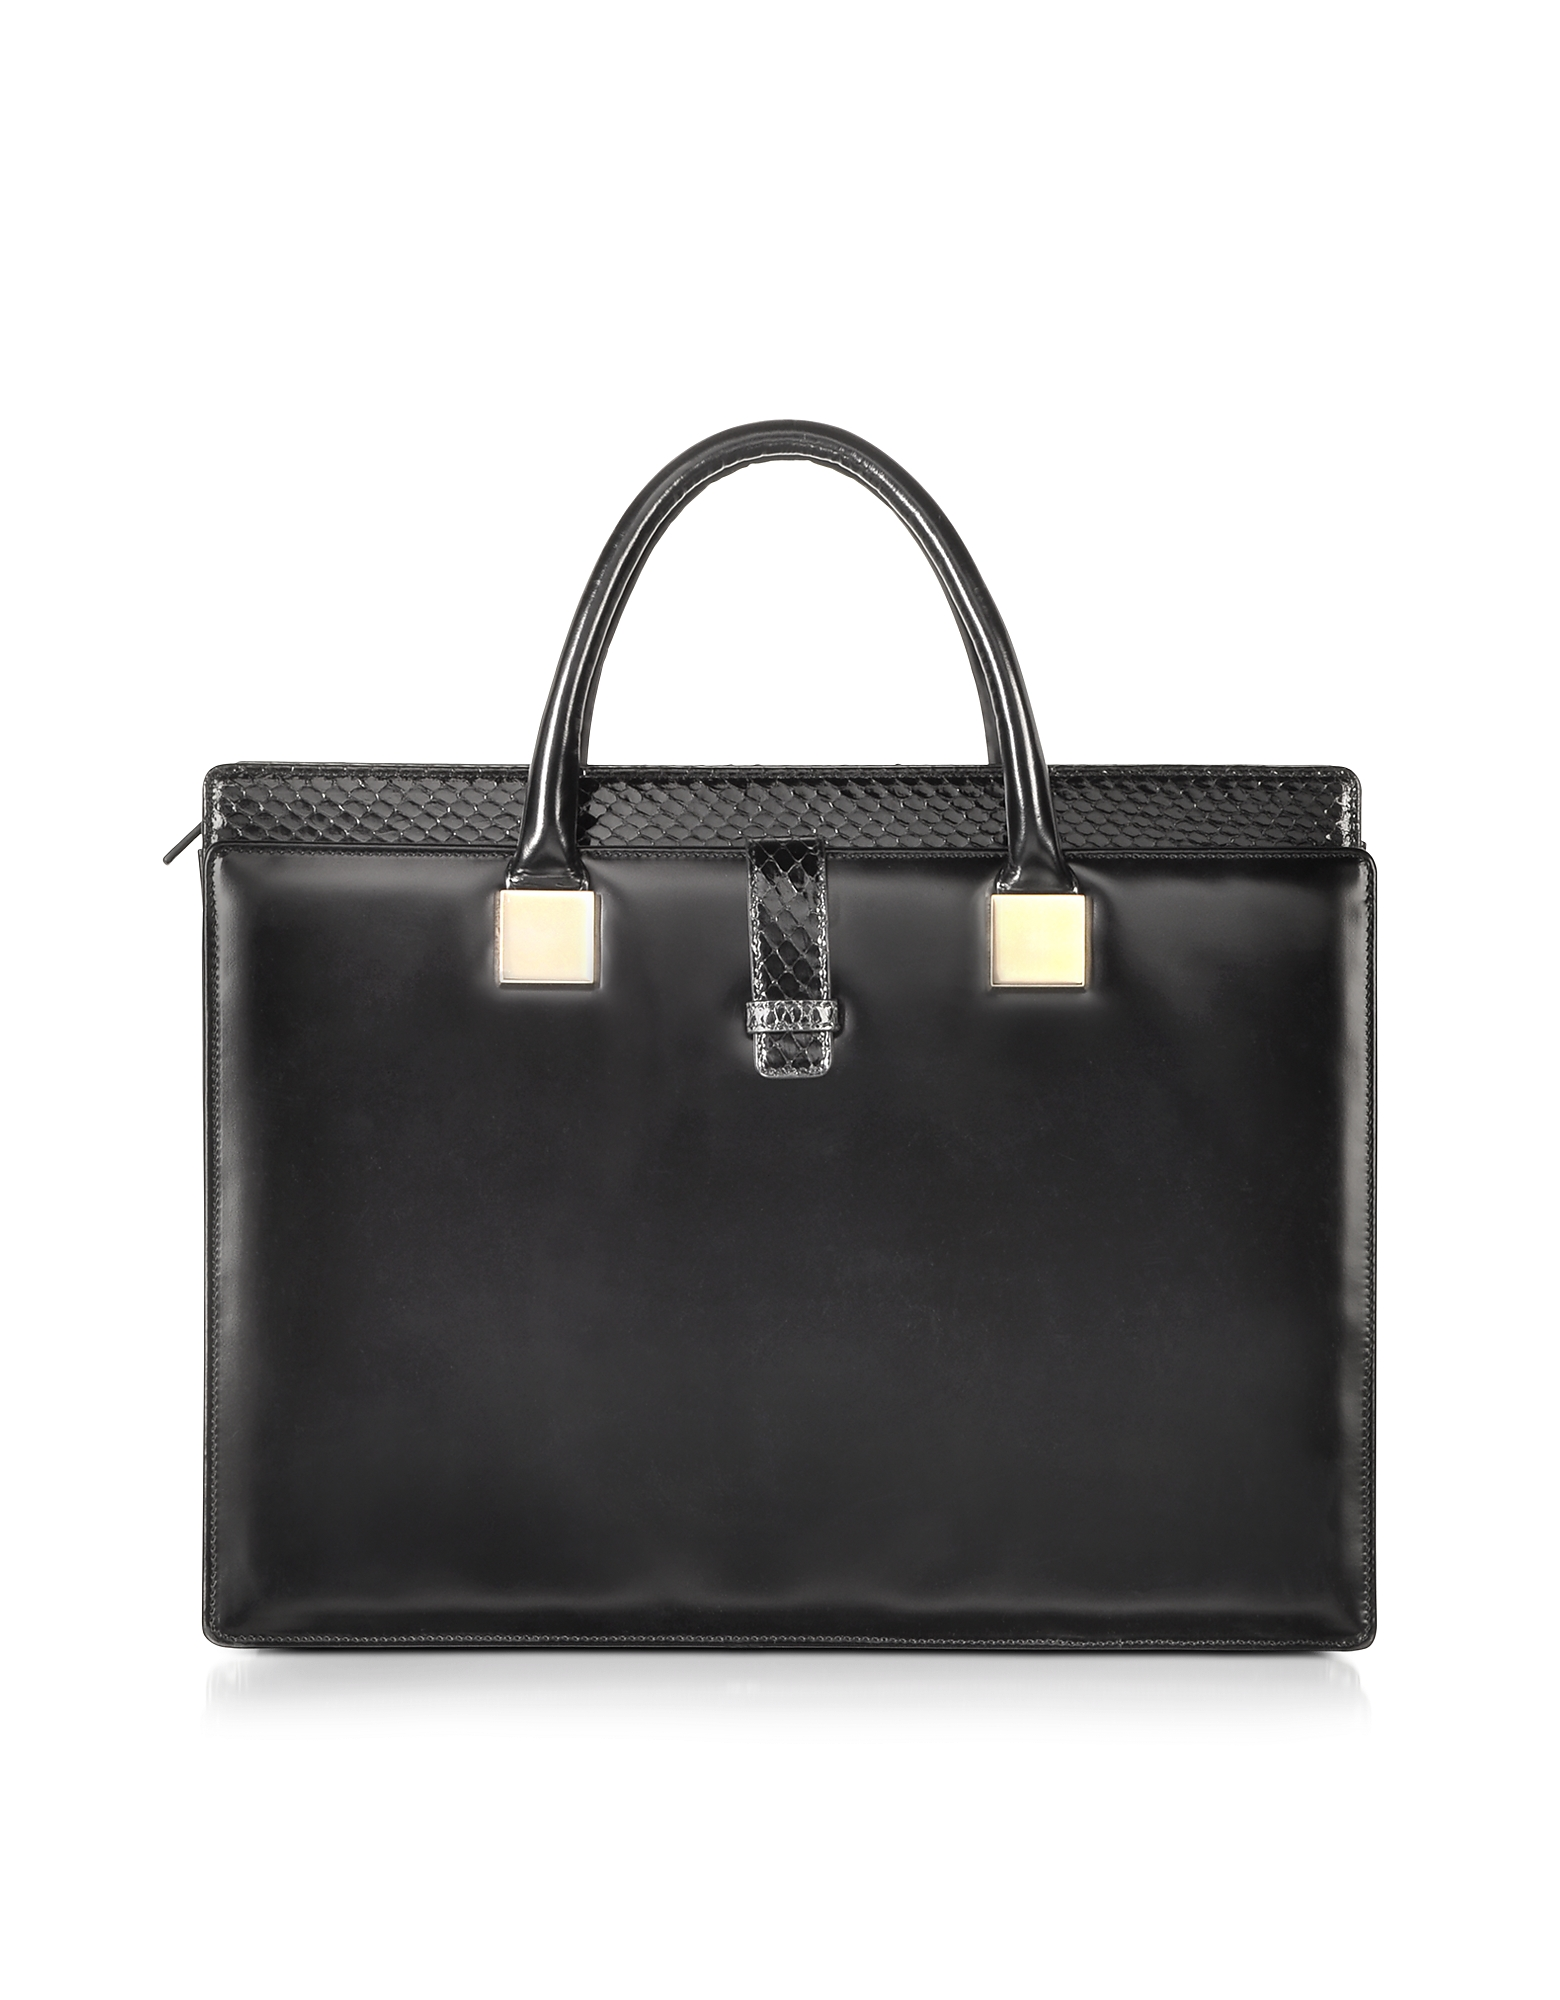 Linda Farrow Handbags, Anniversary Black Ayers and Leather Tote